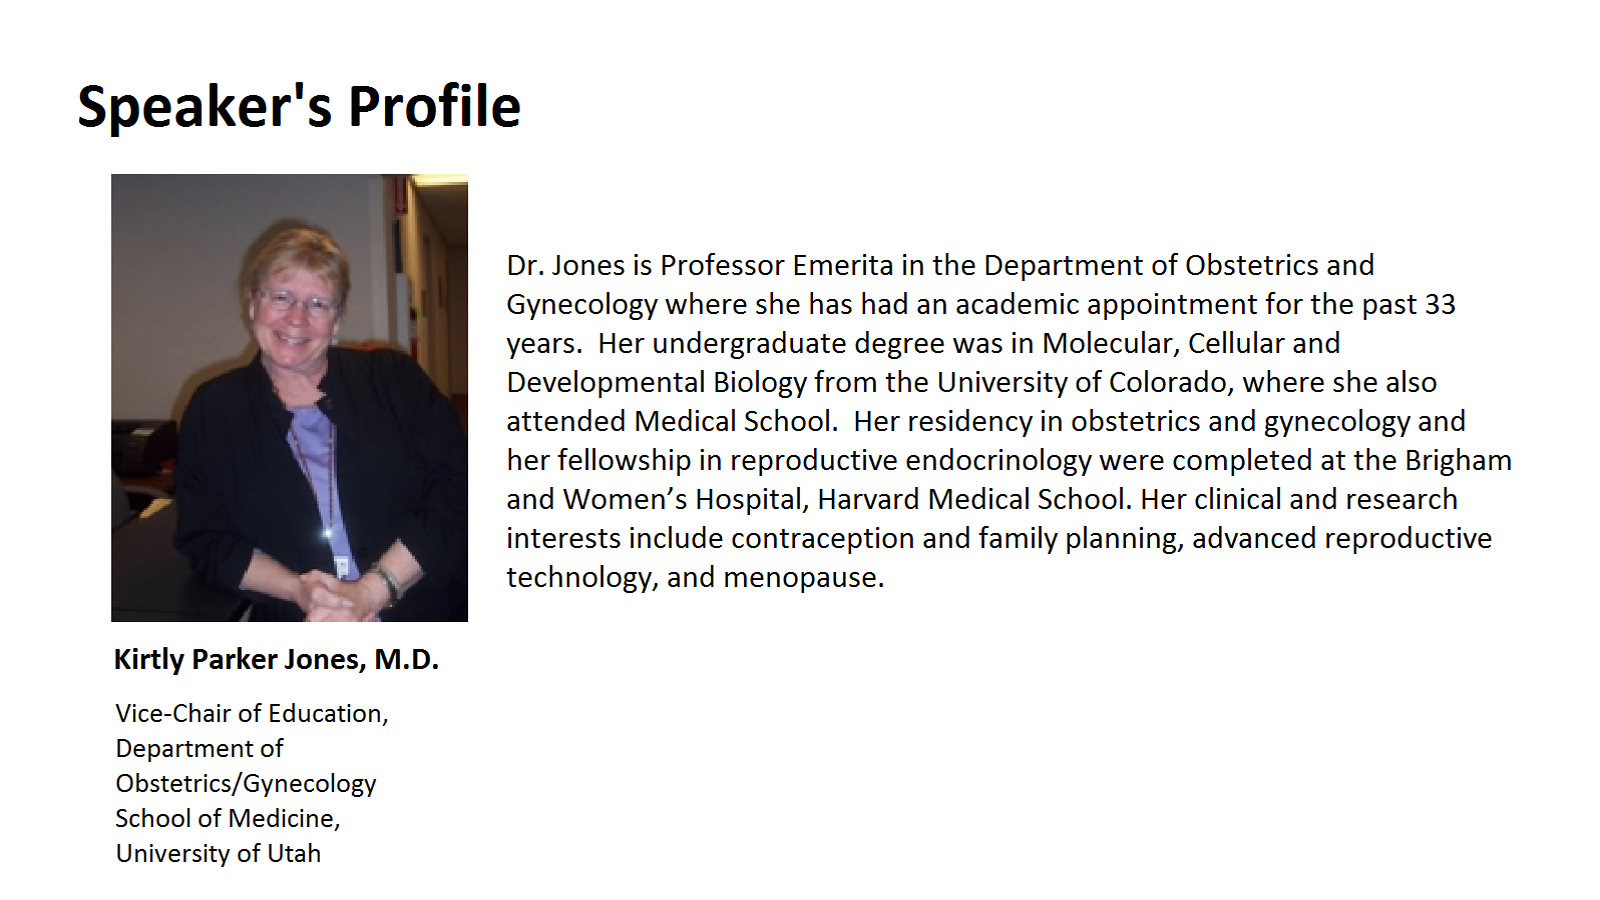 Dec seminar_Speakers Profile (1)